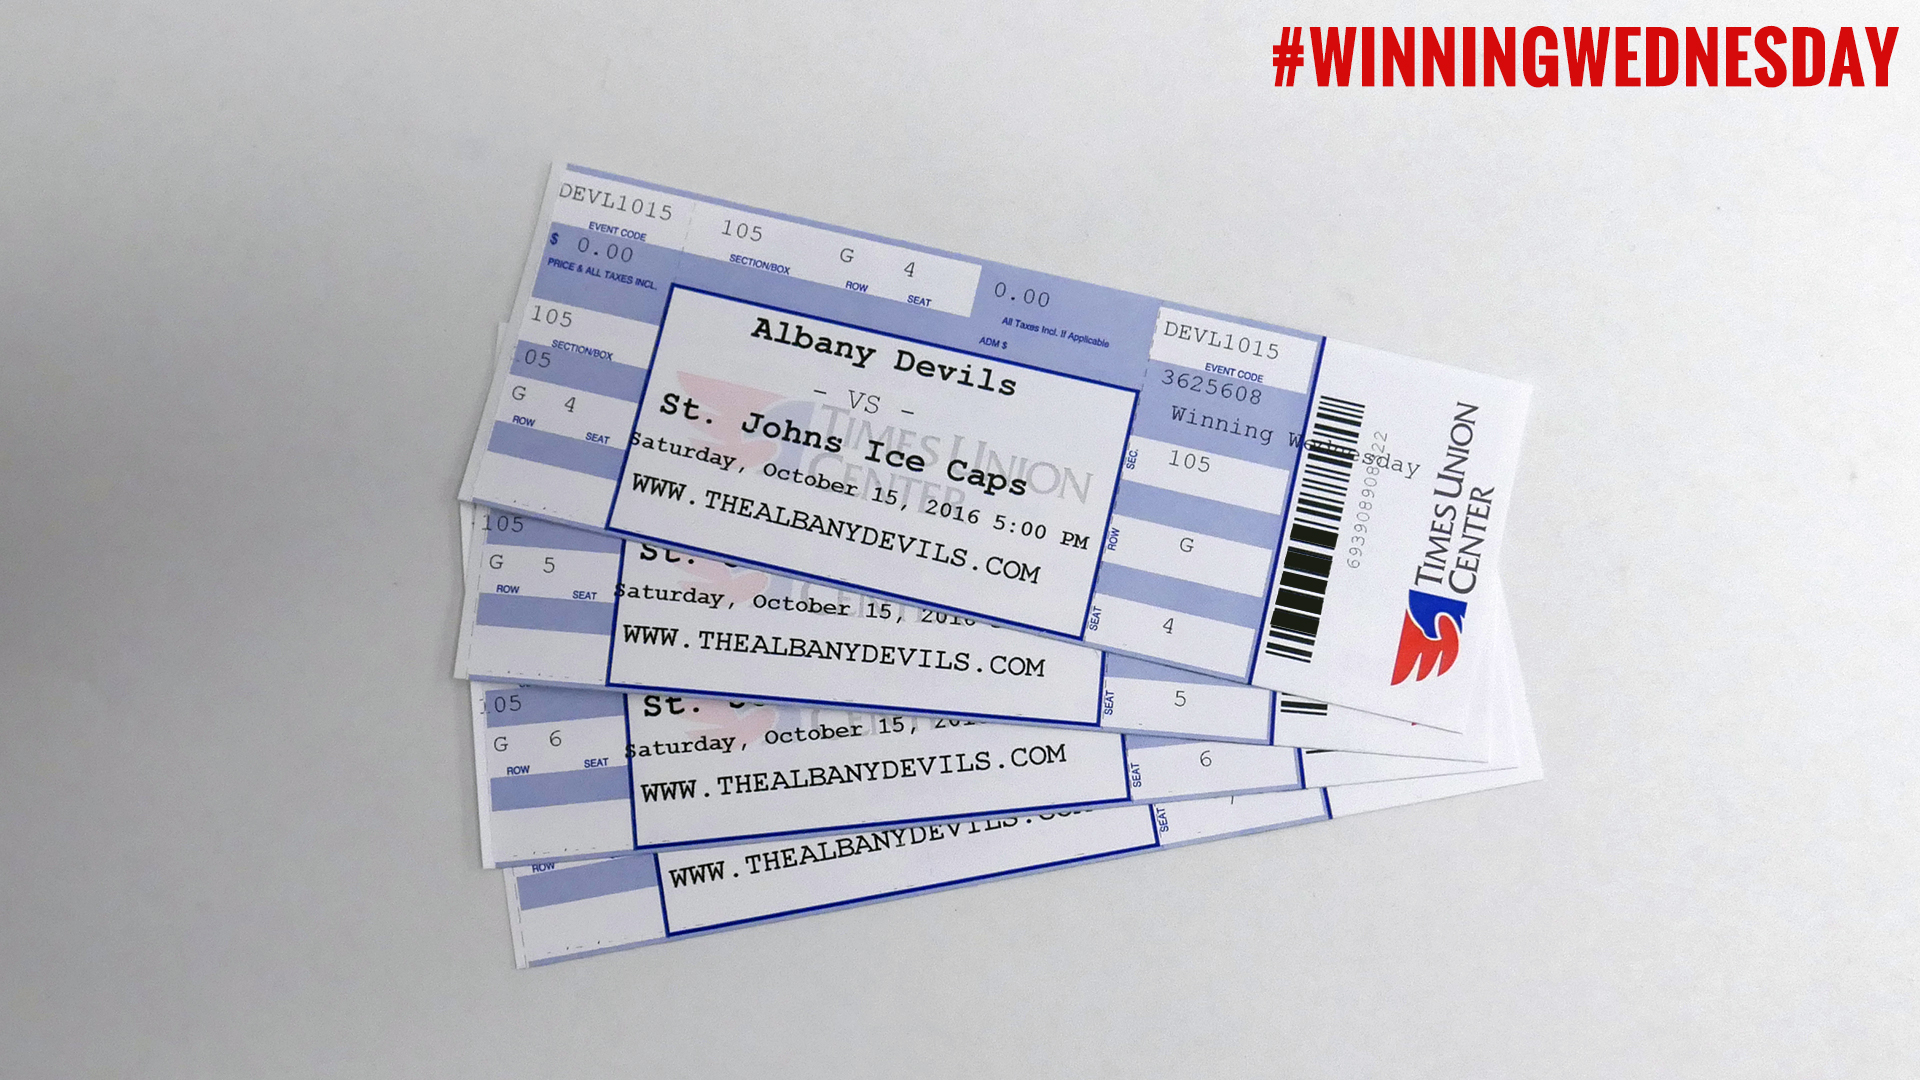 Winningwednesday 4 tickets to opening night albany devils for Northeast ski and craft beer showcase